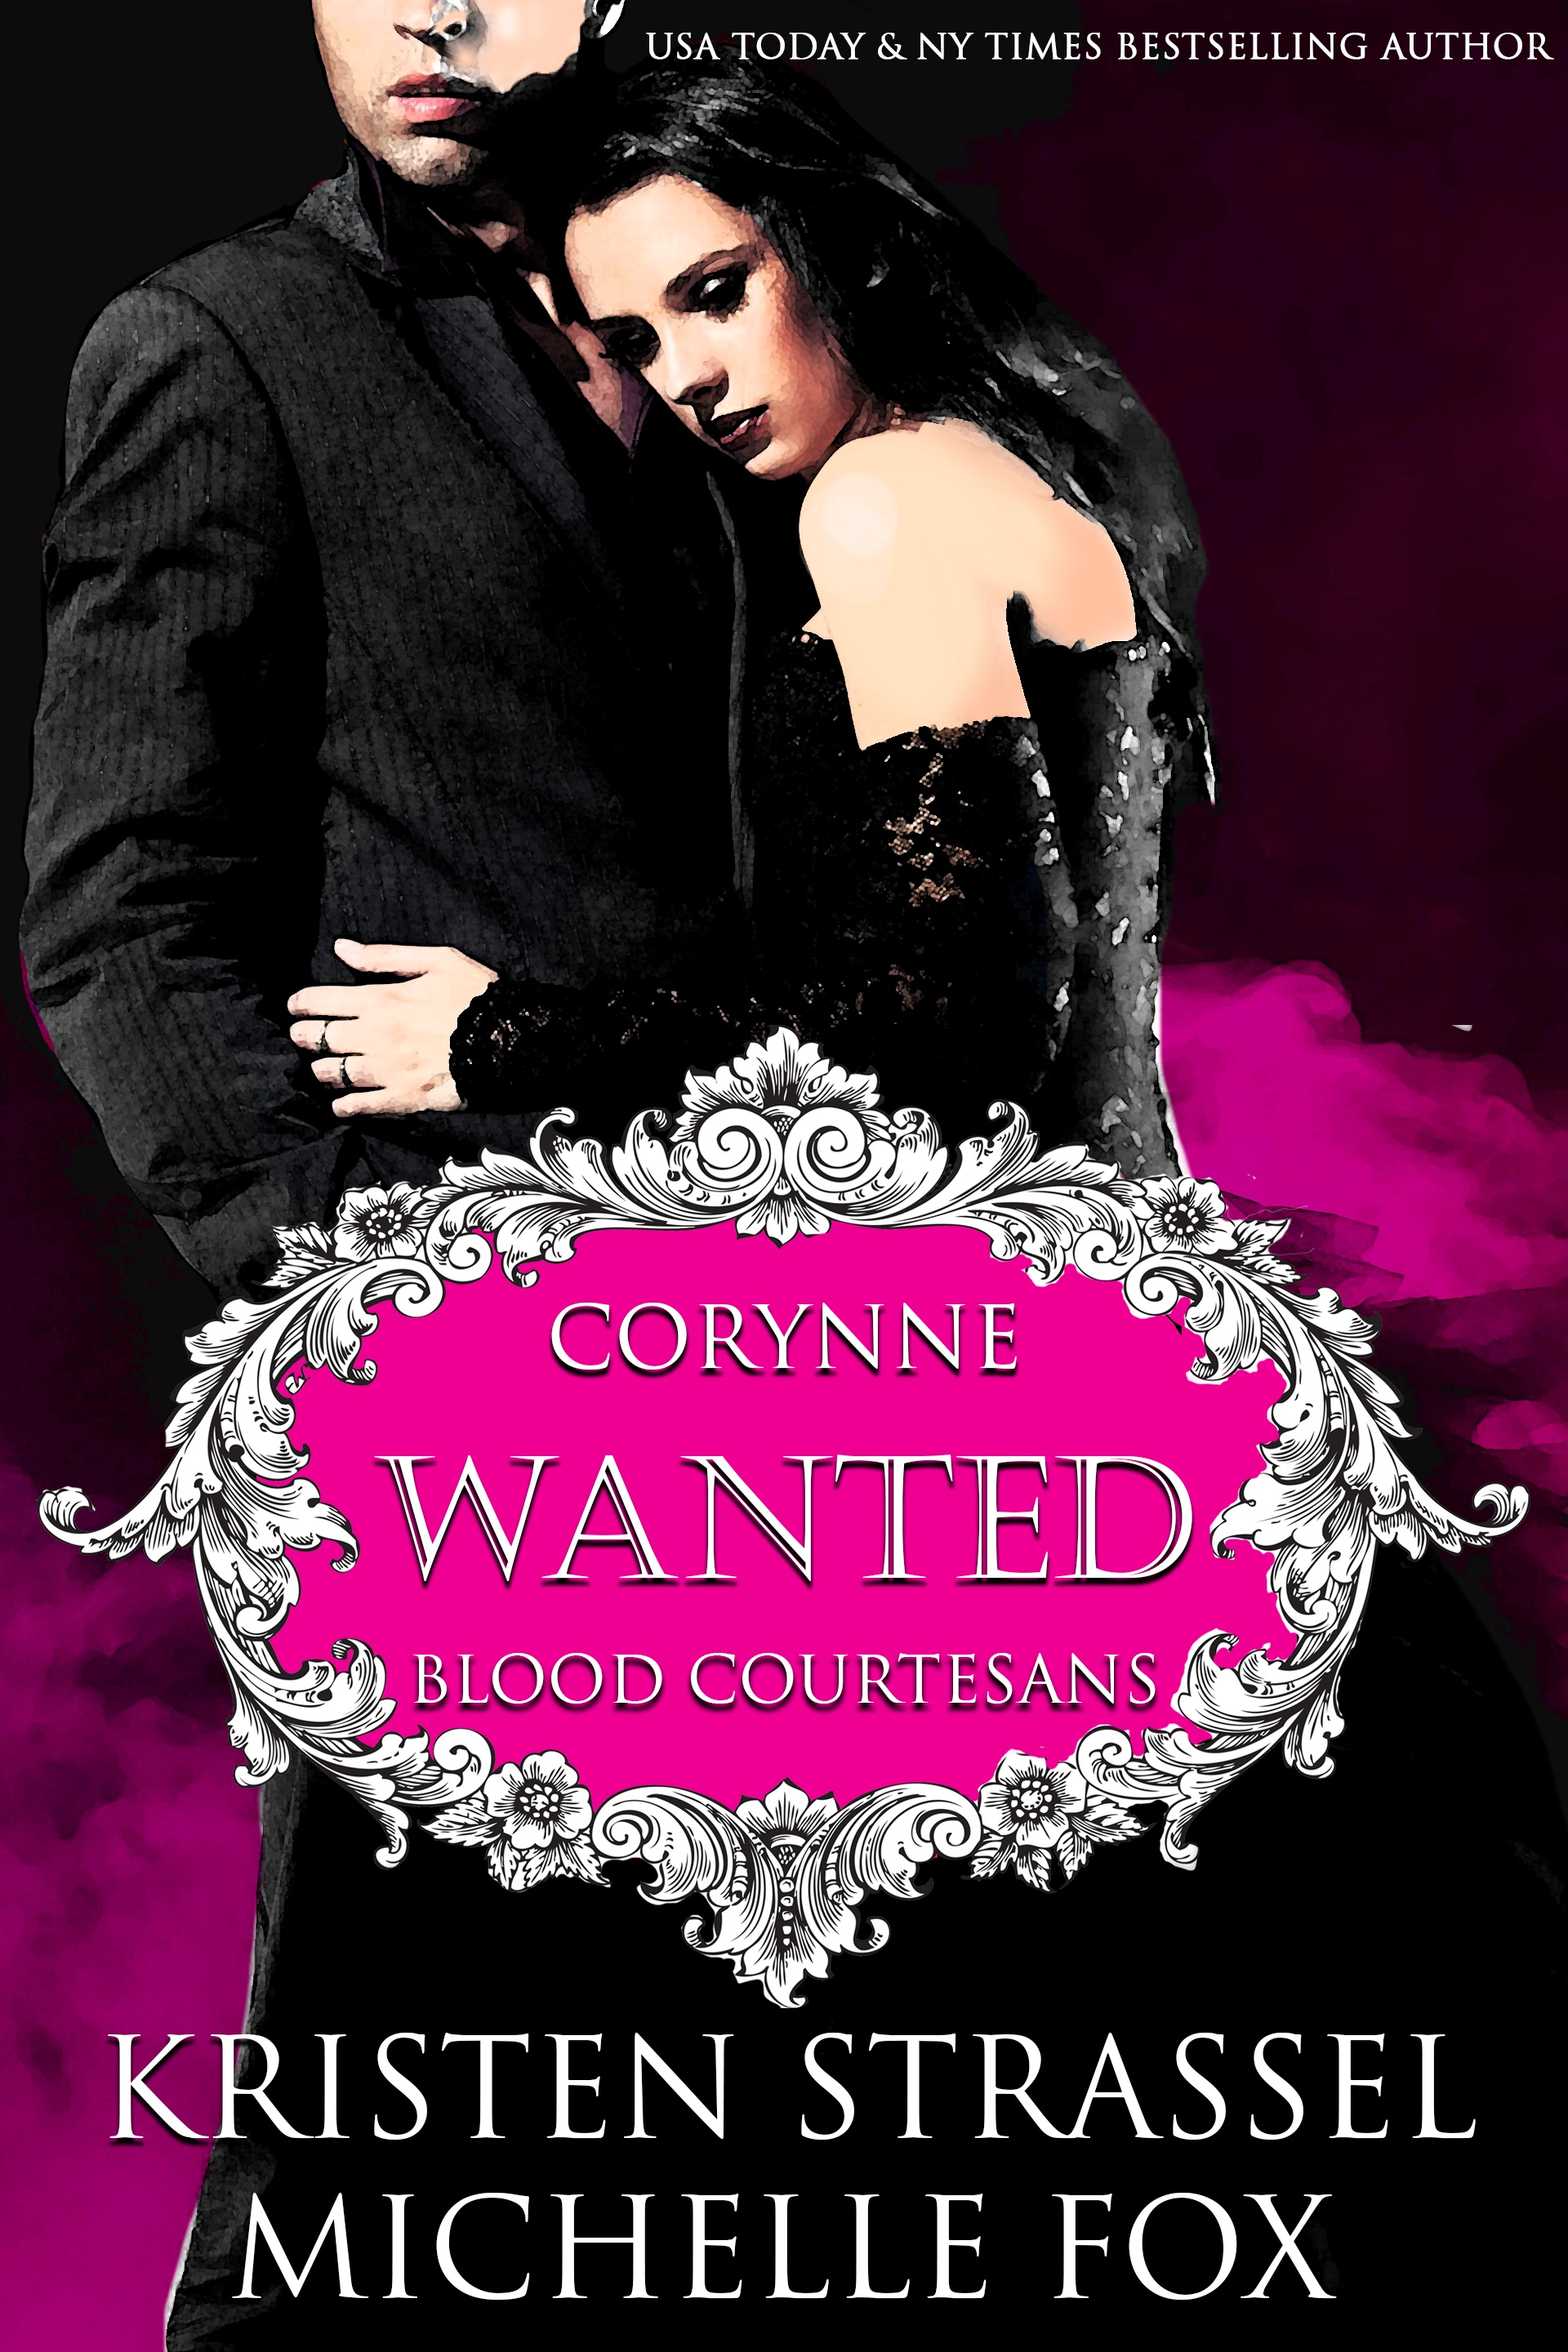 Wanted Blood Courtesans Kristen Strassel